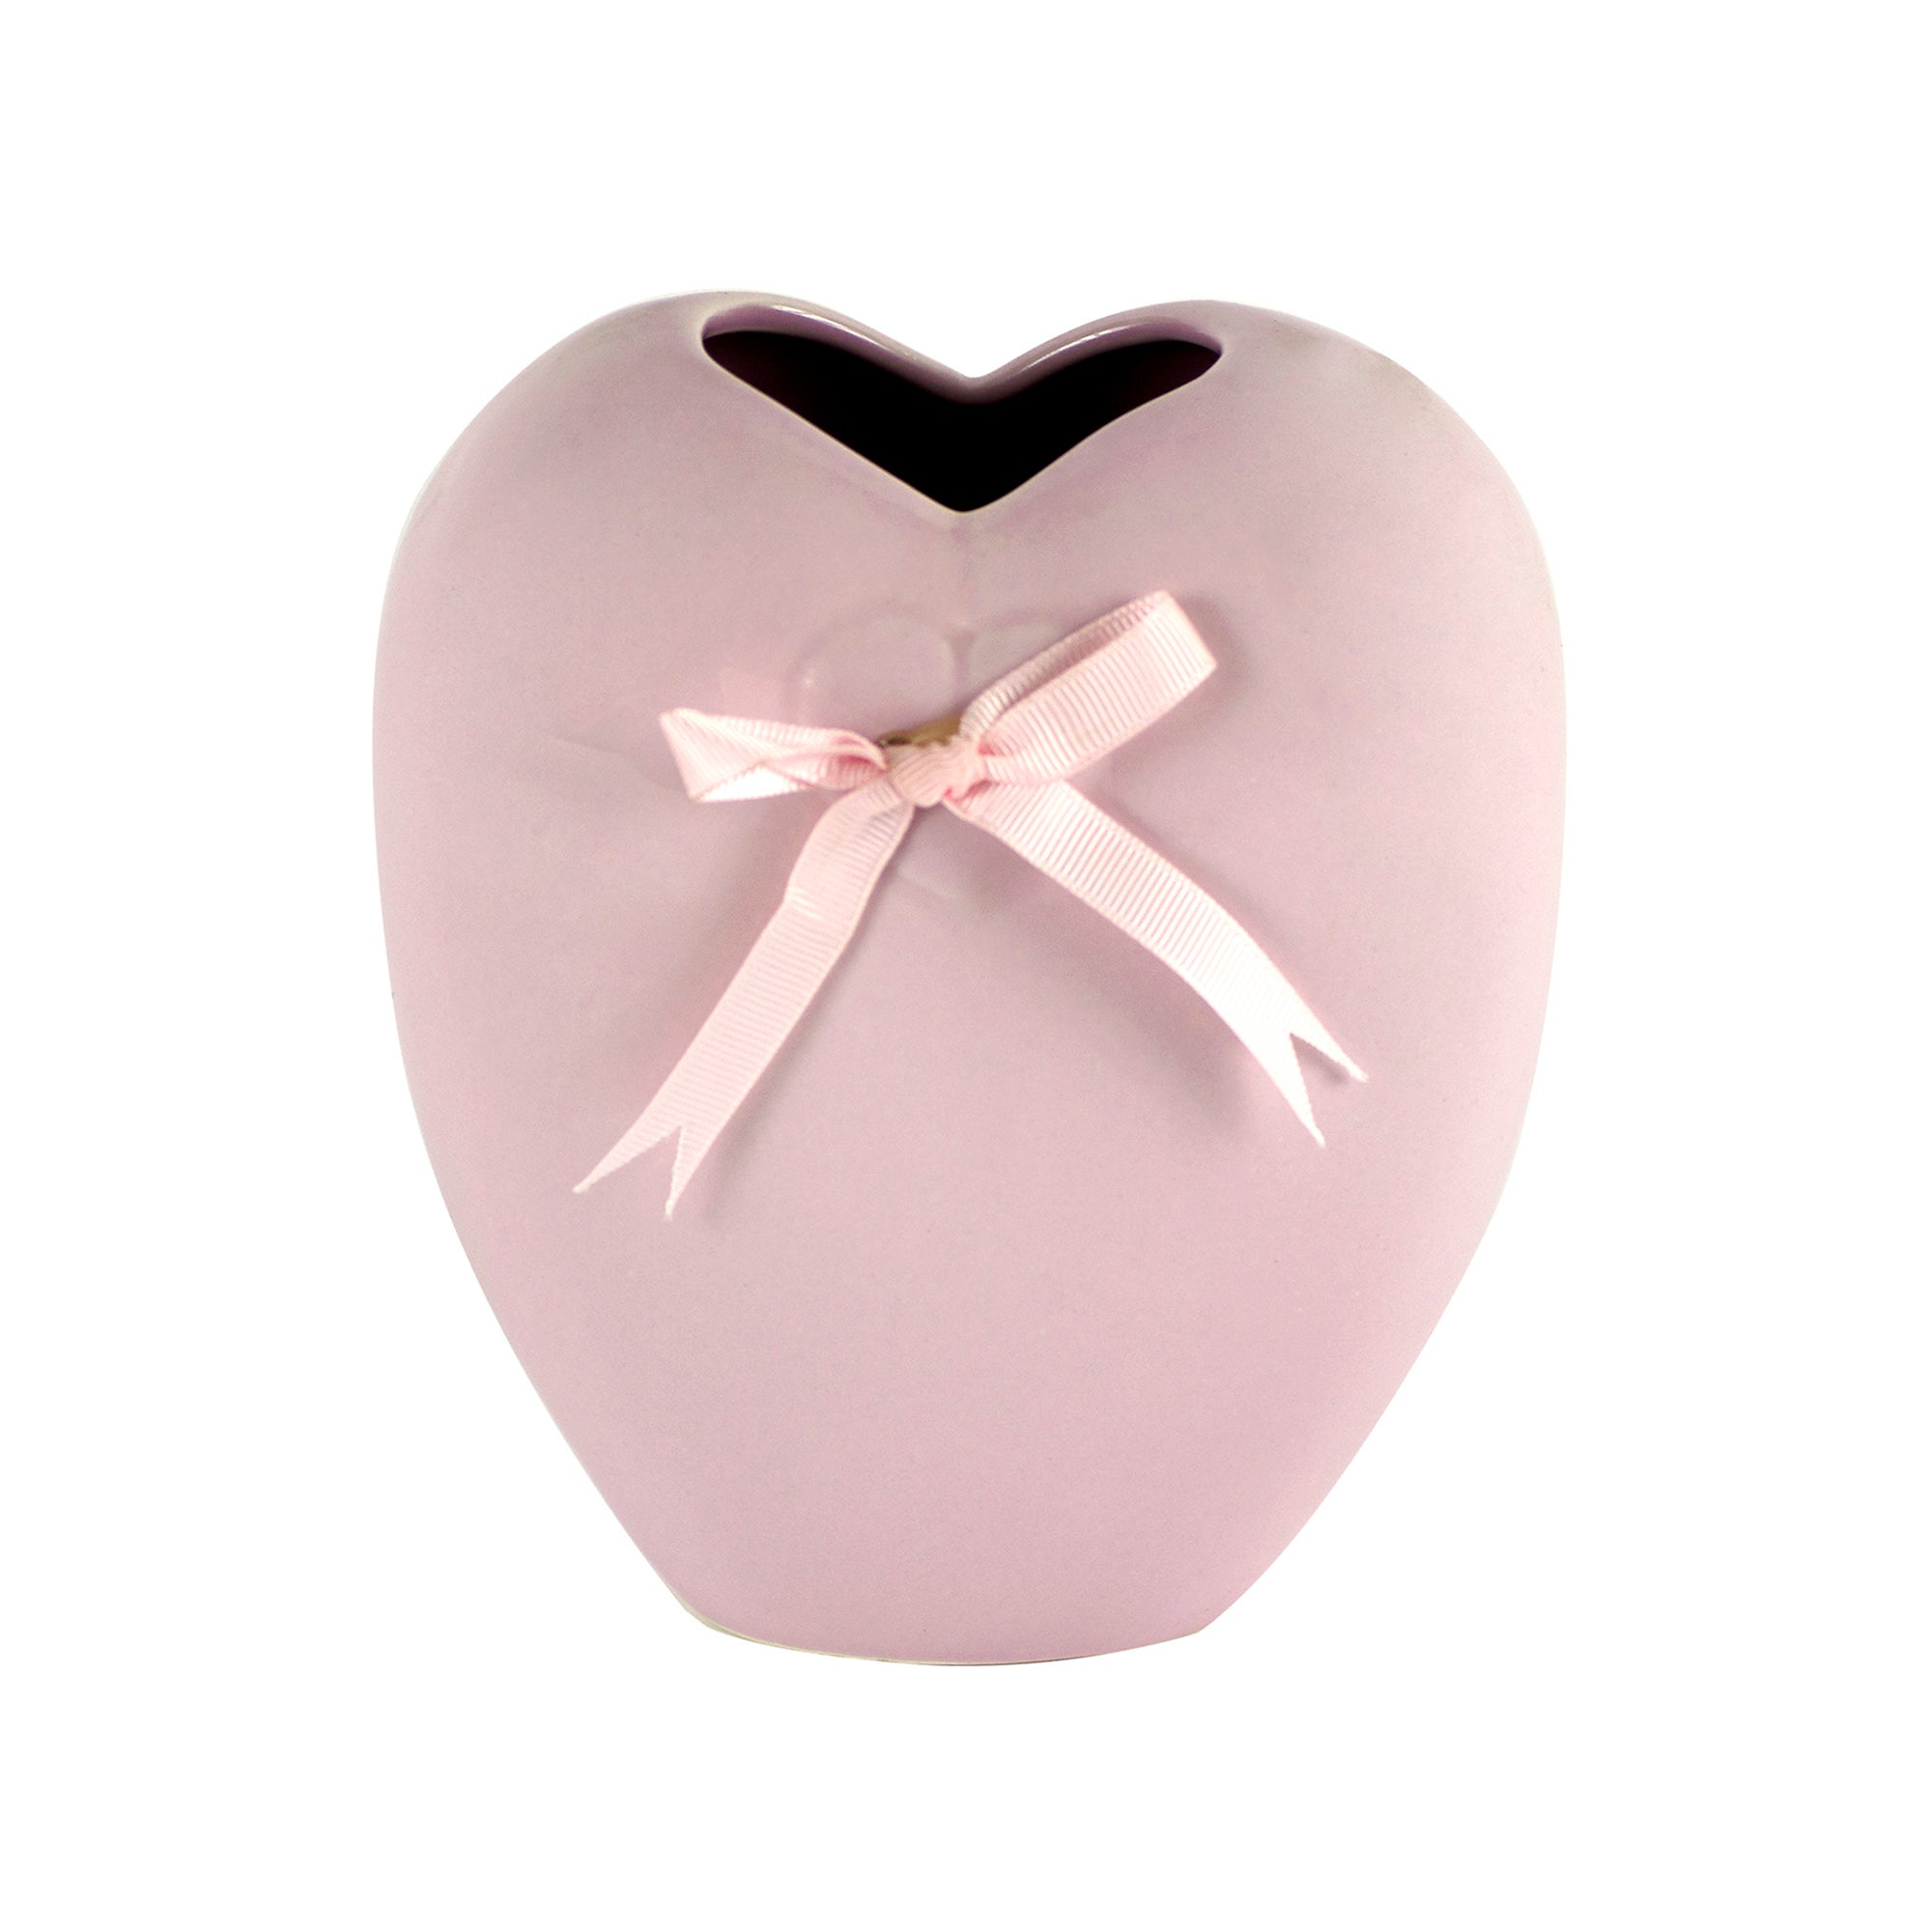 Candy Rose Collection Pink Heart Shaped Vase